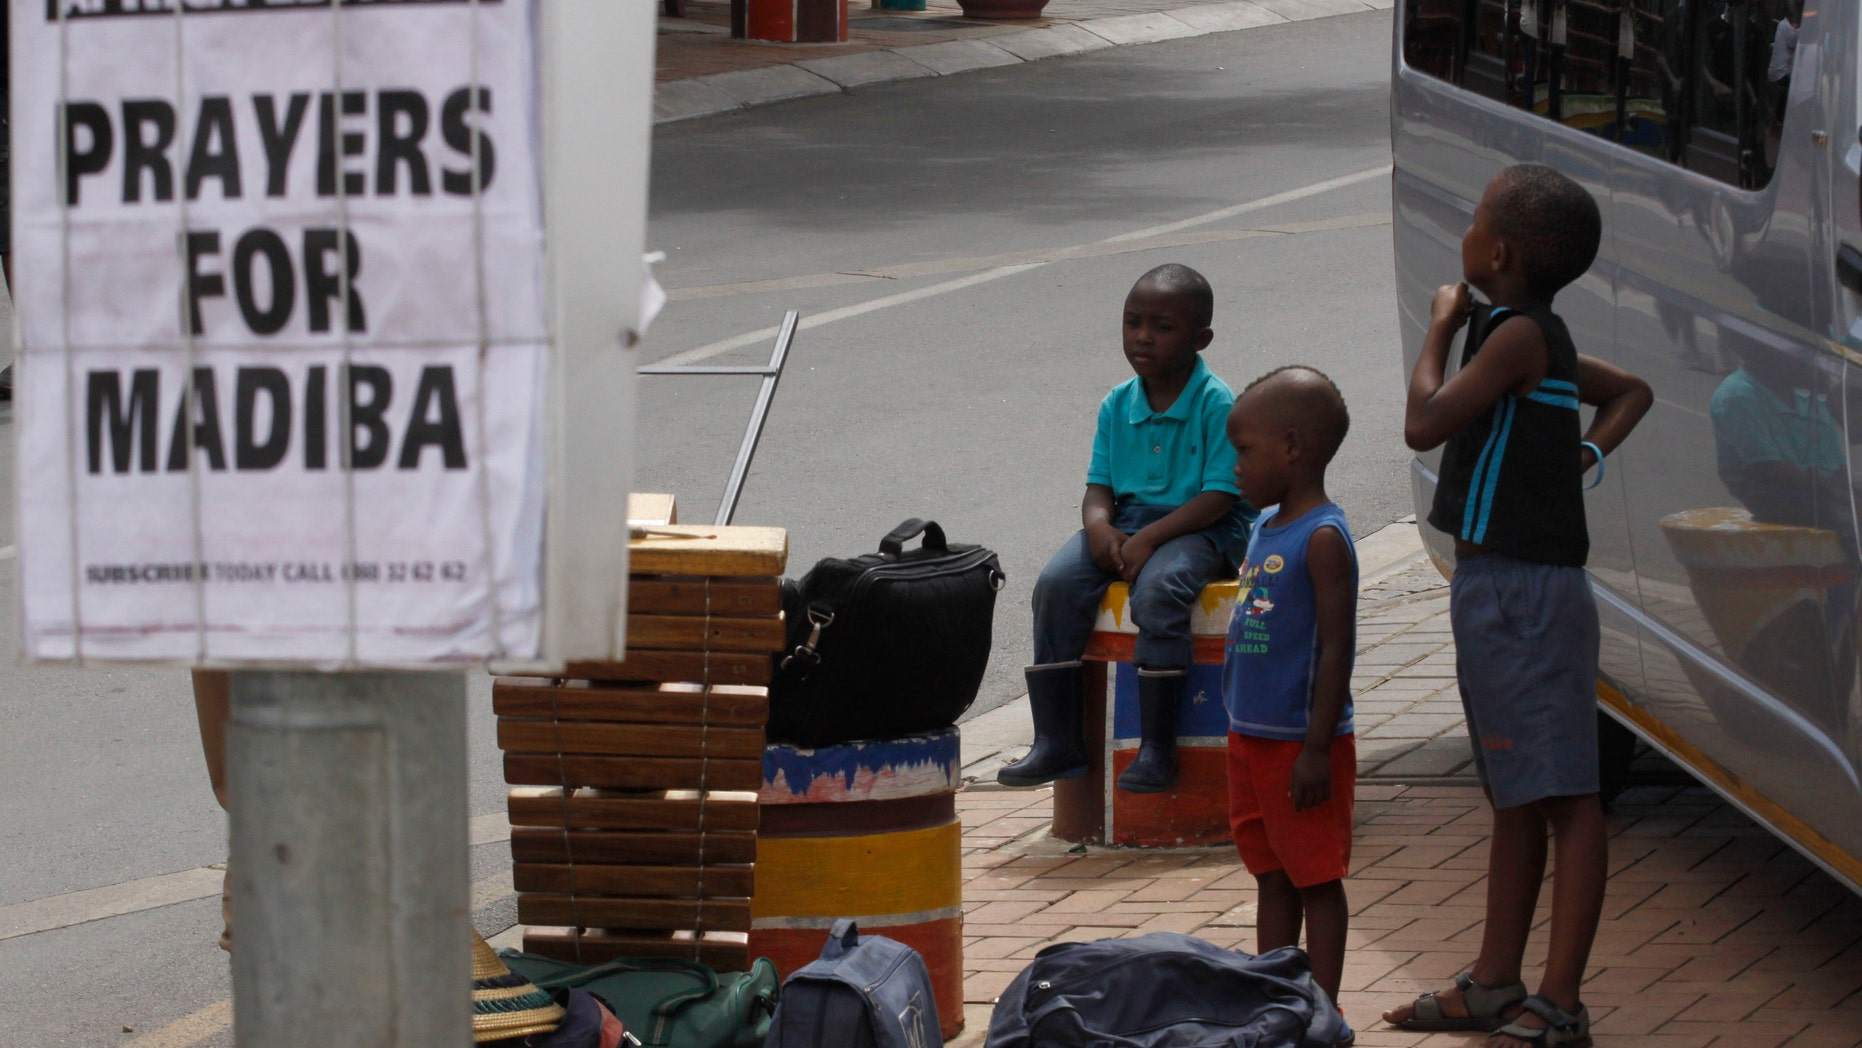 Dec 10, 2012 - Children hang out next to newspaper headline in tourist hub of Soweto South Africa, where Nelson Mandela once lived. Mandela is affectionately known as Madiba.